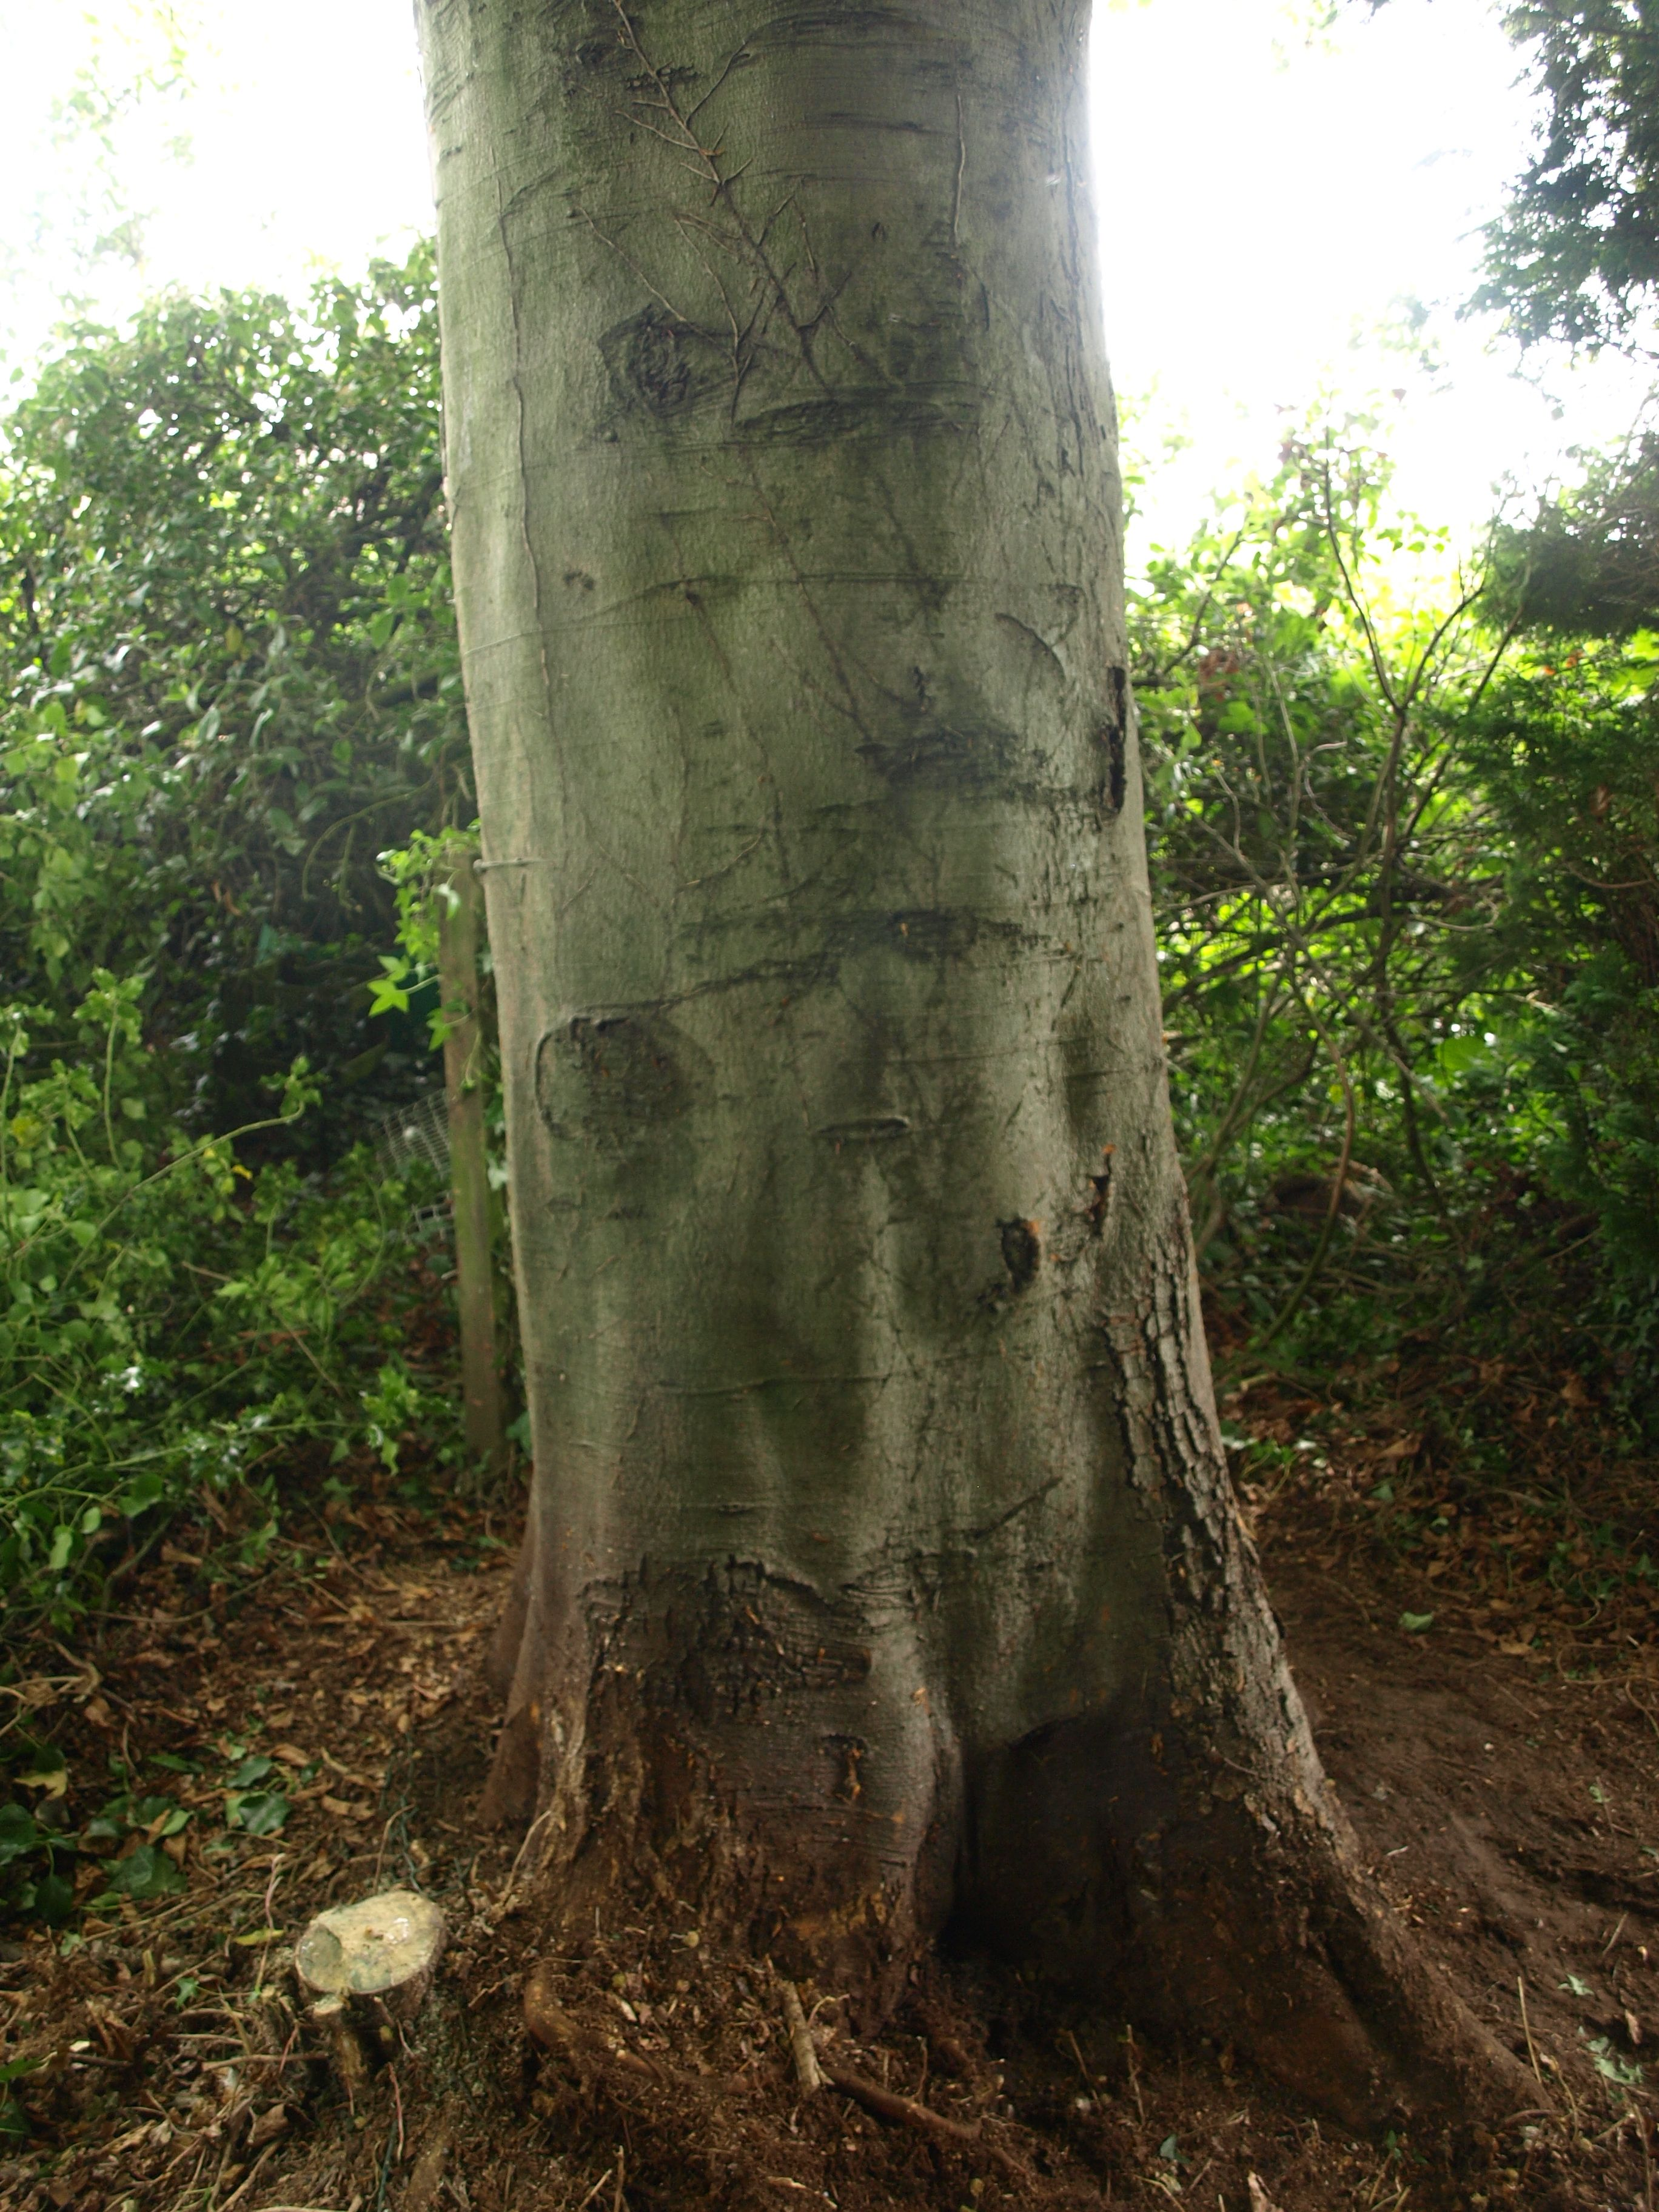 Typical Beech Trunk Note The Smooth Grey Bark With Images